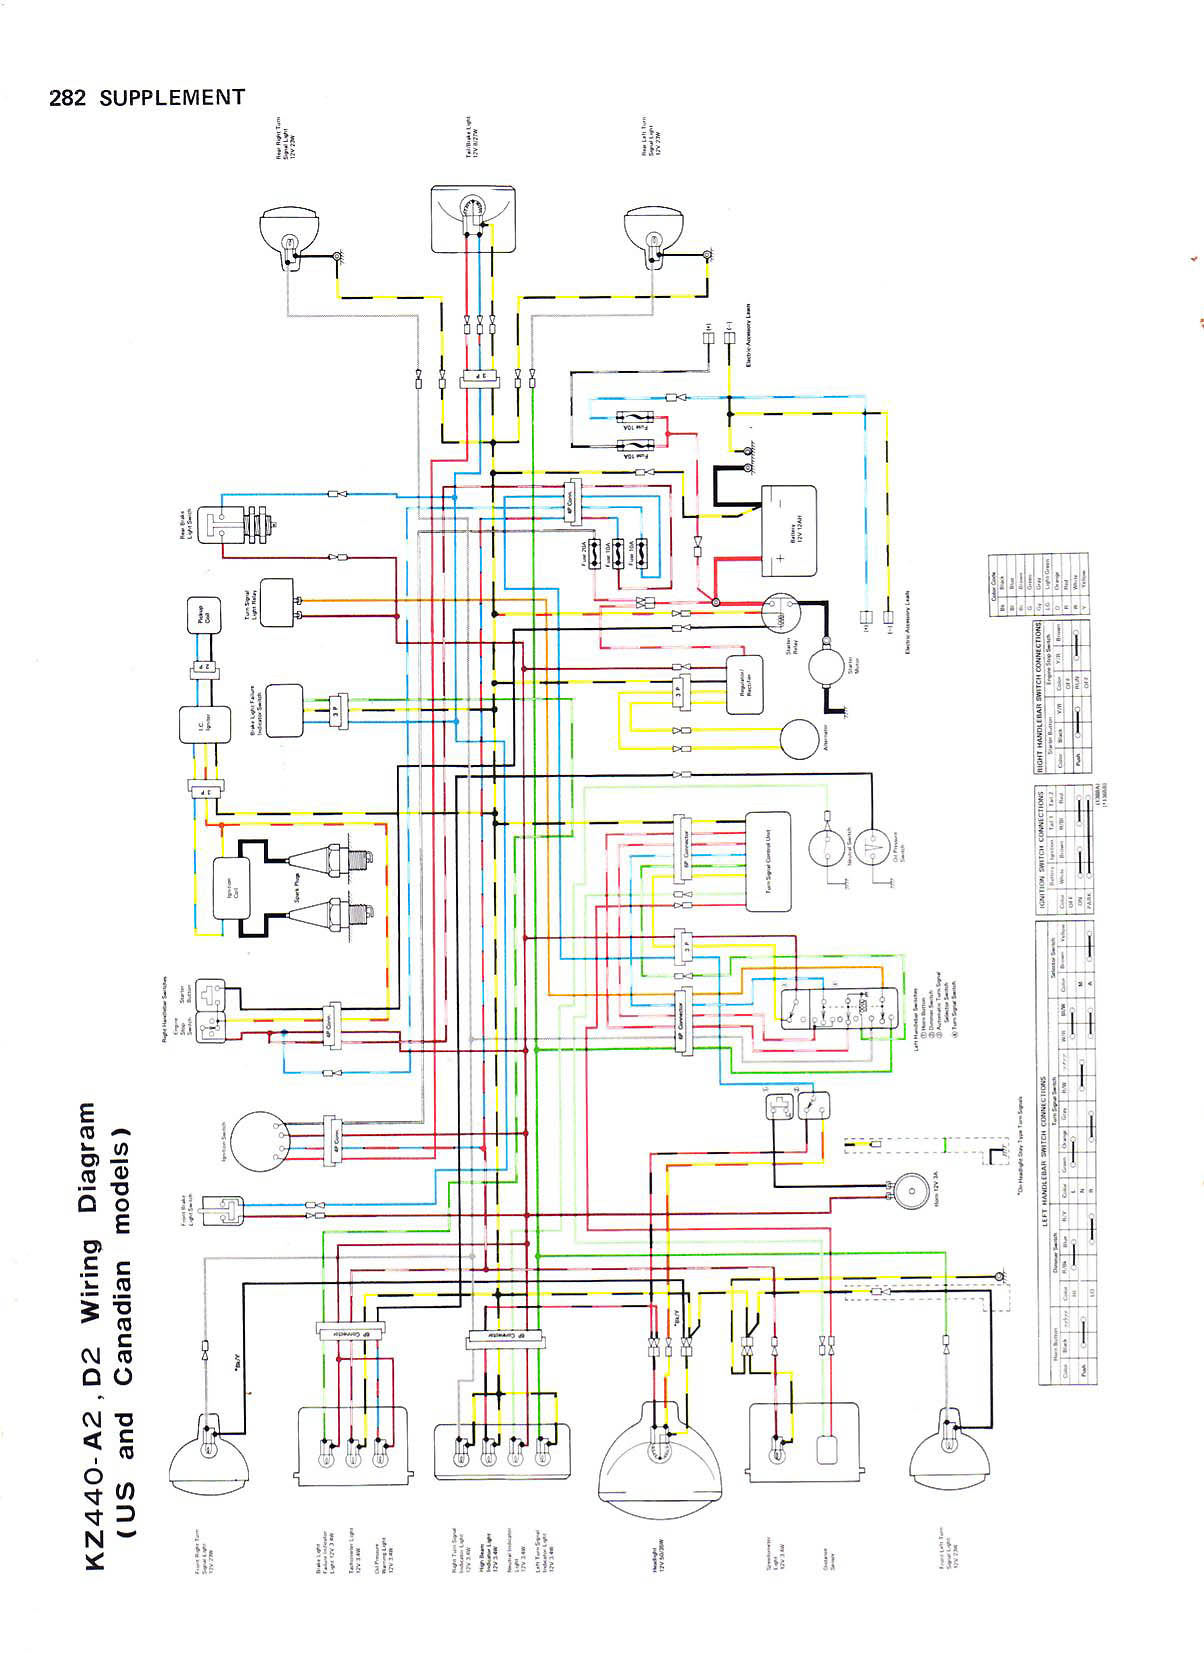 Zg1000 Wiring Diagram Everything About Kawasaki Schematics Diagrams Rh Casamario De 2006 Windshield